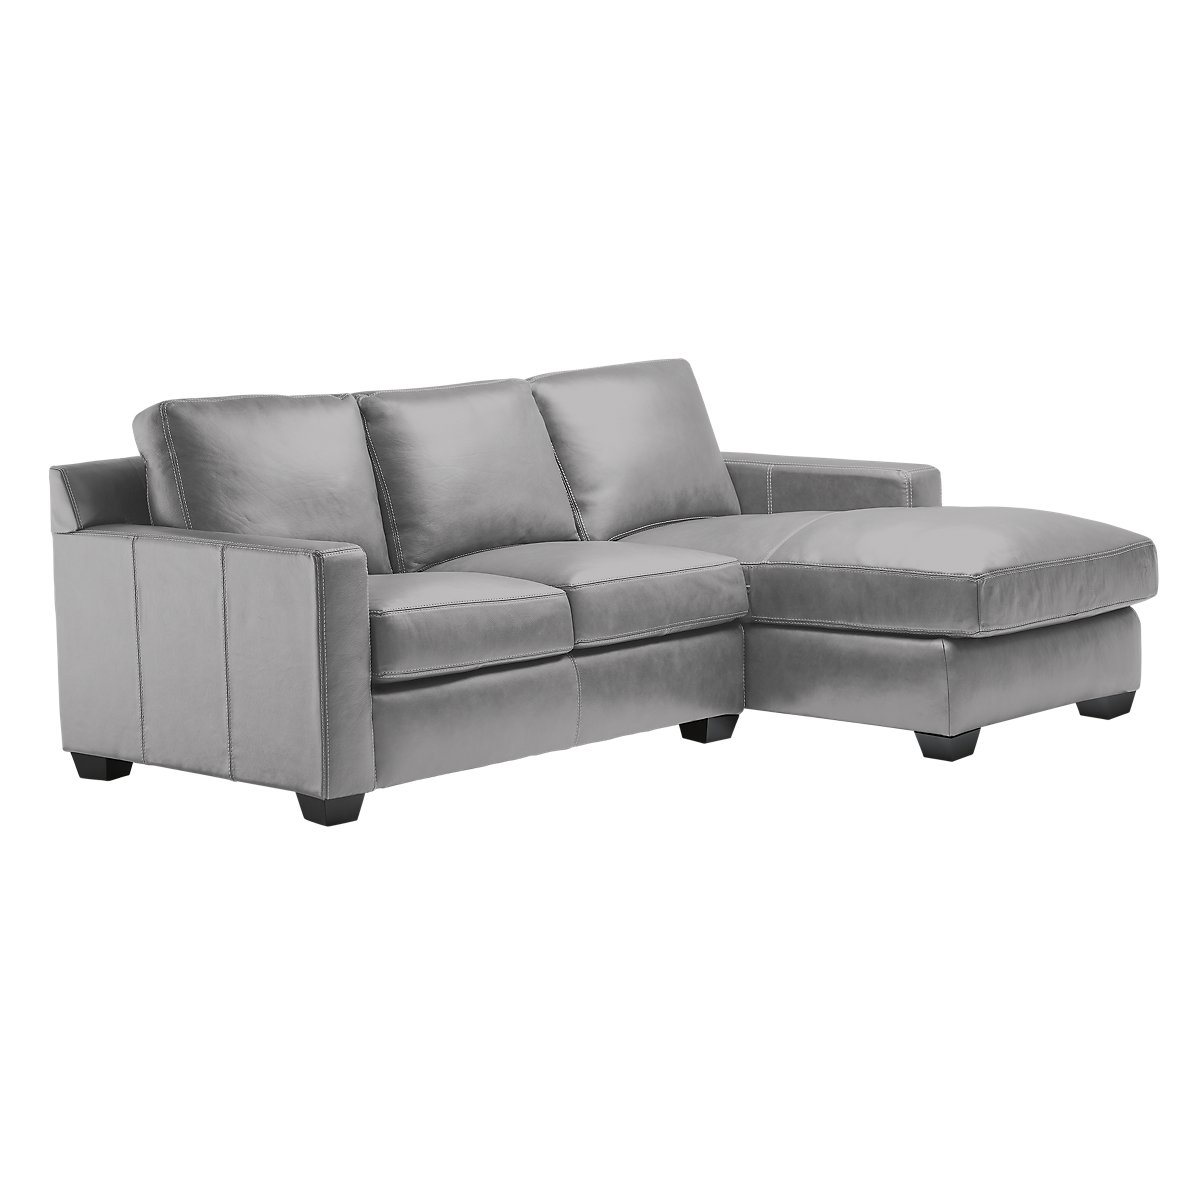 Carson Gray Leather Right Chaise Sectional | Living Room ...